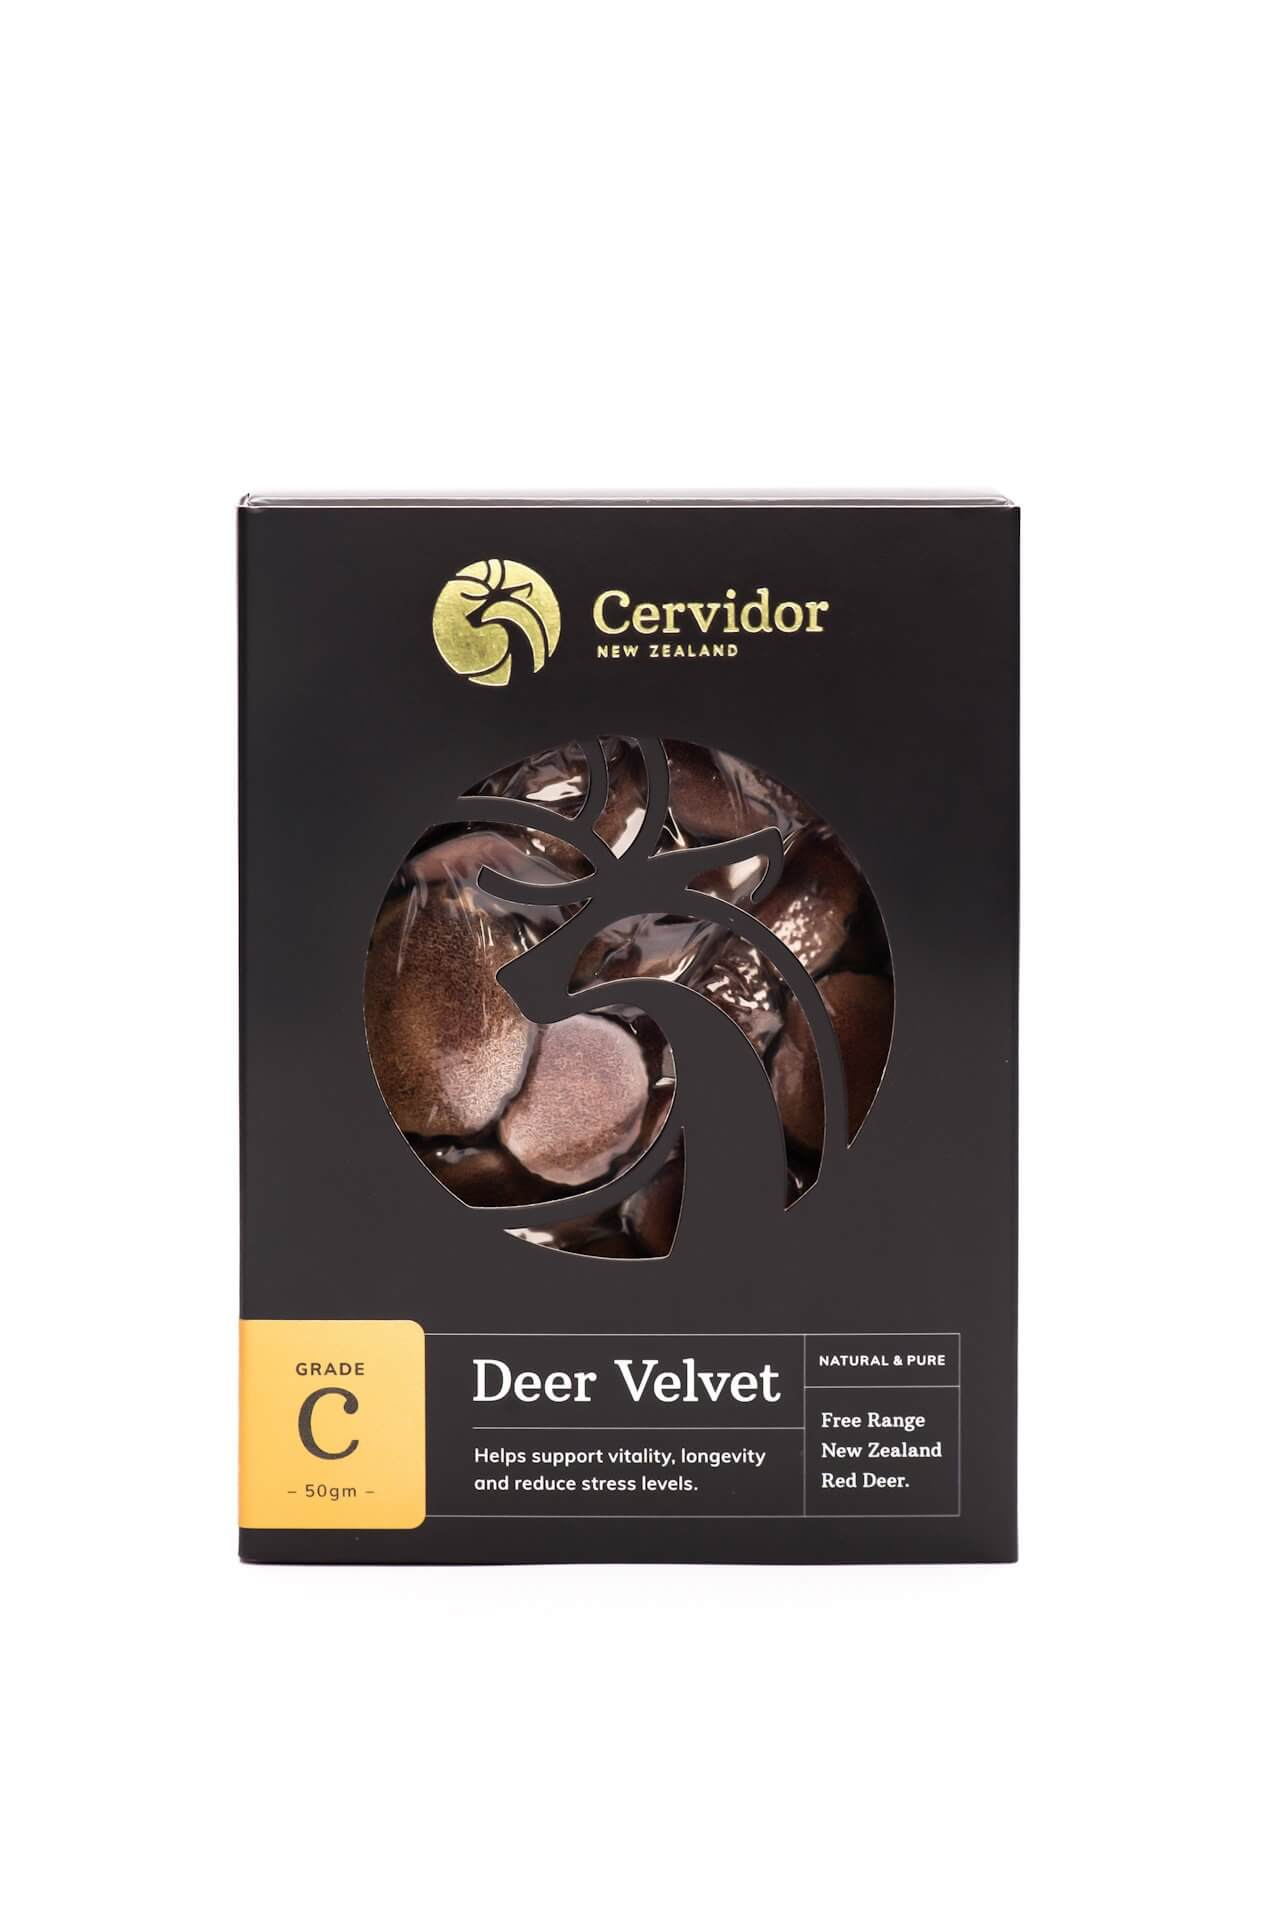 Dried Deer Velvet Slices C Grade